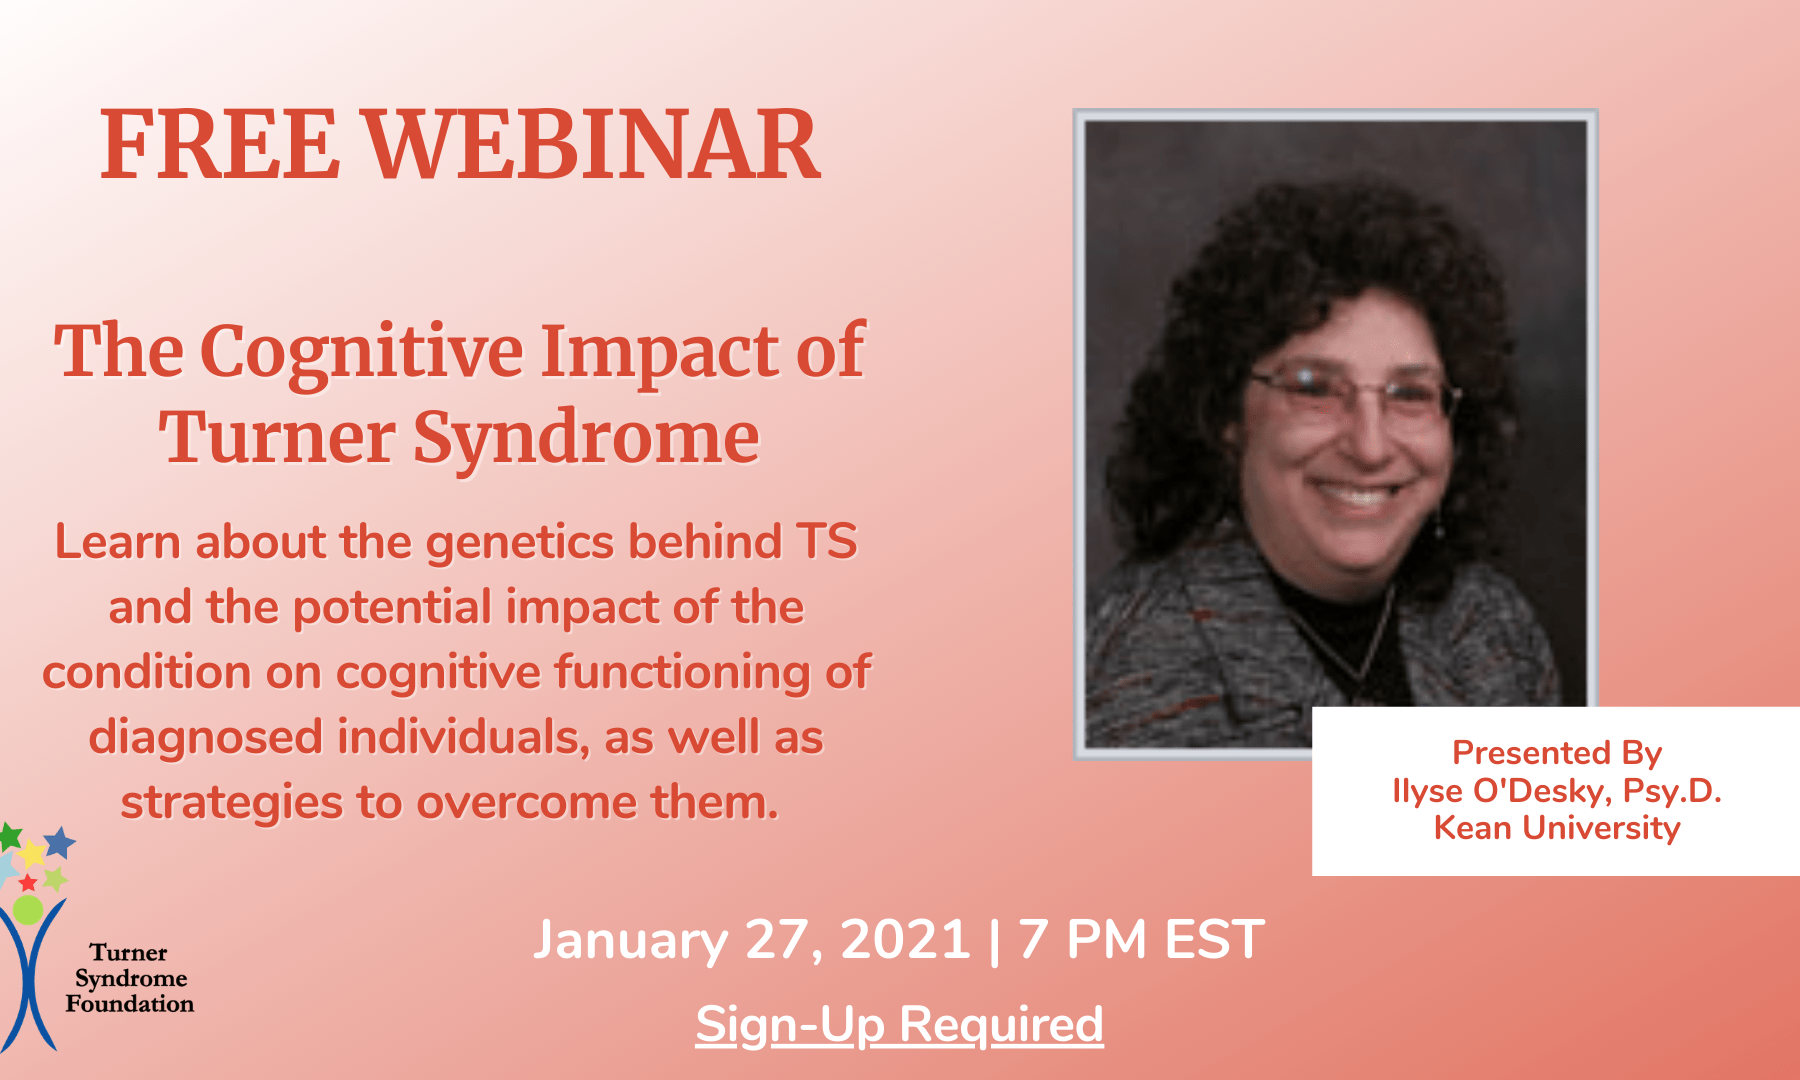 the cognitive impact of TS webinar